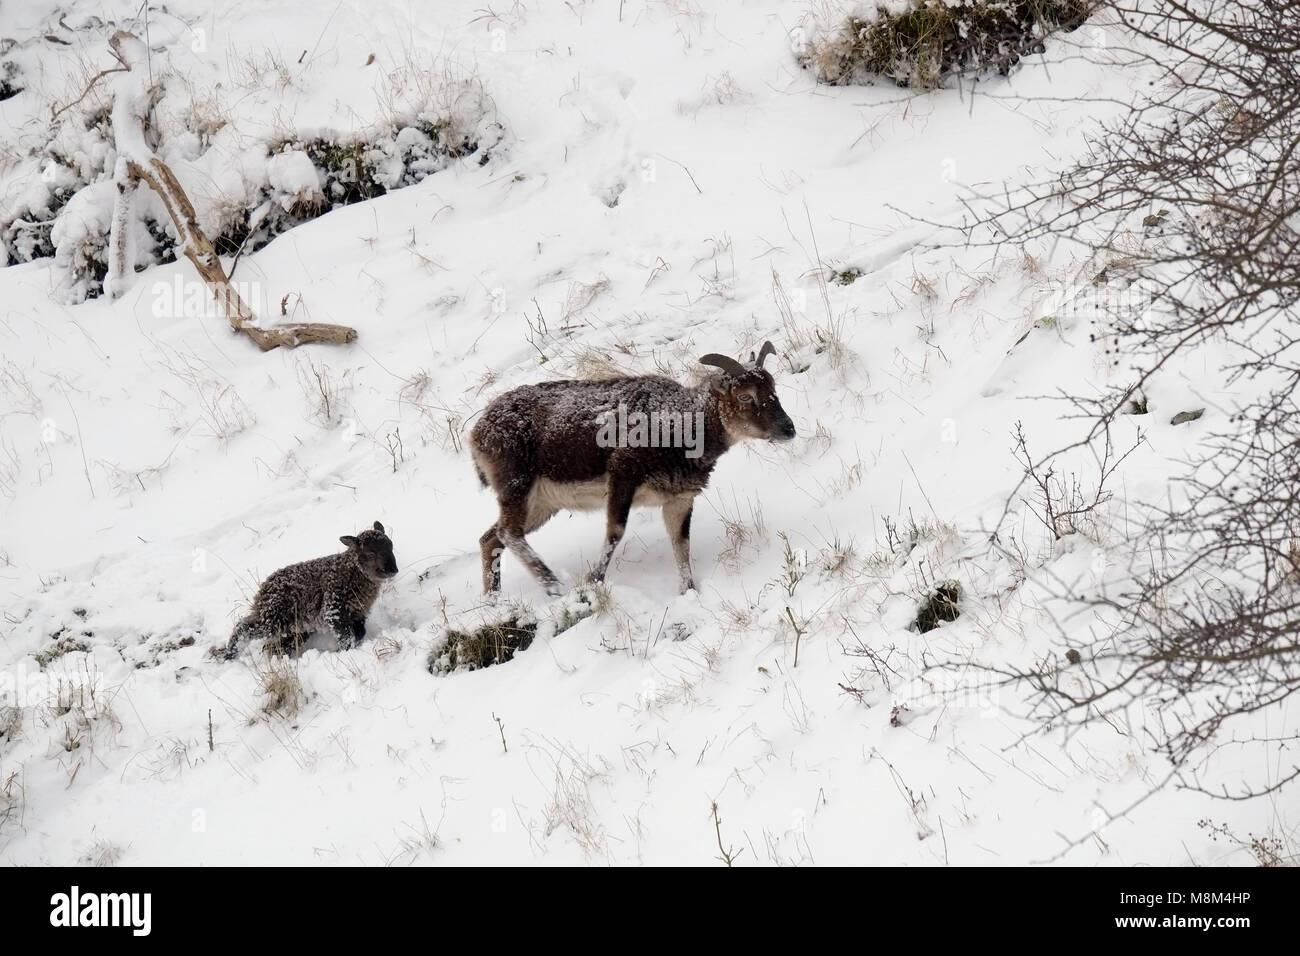 Cheddar Gorge, UK. 18th March 2018 - Feral soay sheep and lambs  in the snows of Cheddar Gorge. Credit: Timothy - Stock Image